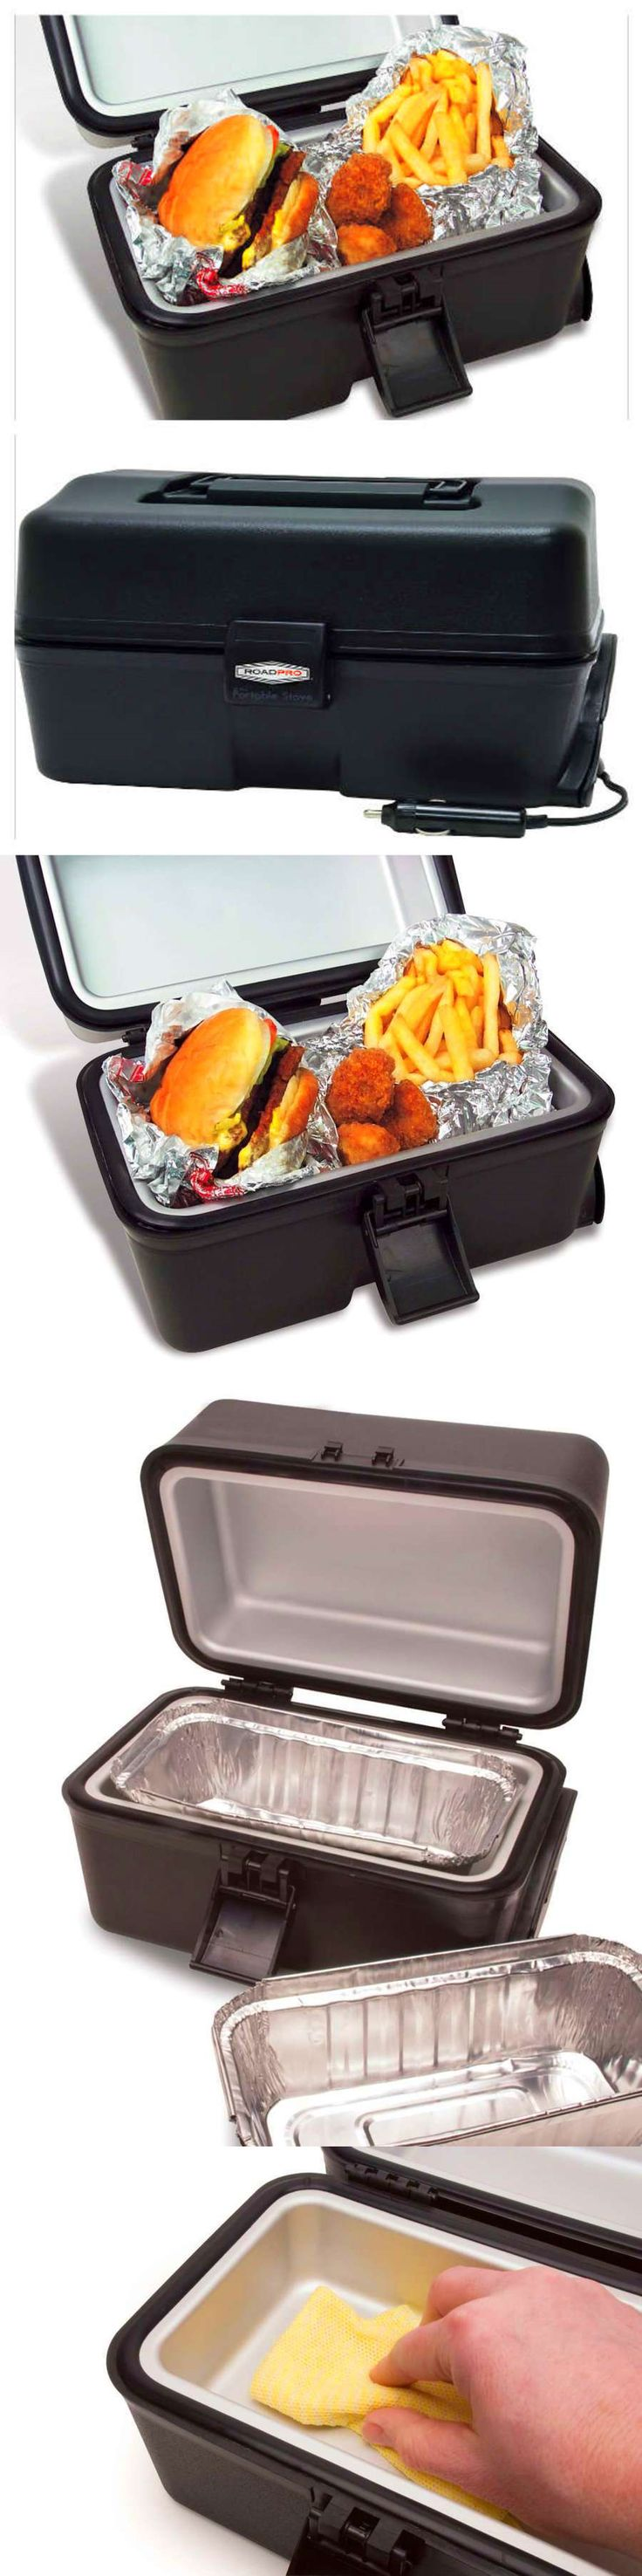 12-Volt Portable Appliances: Portable Microwave Stove Oven Heater 12 Volt Car Cigerette Lighter Food Warmer BUY IT NOW ONLY: $42.26